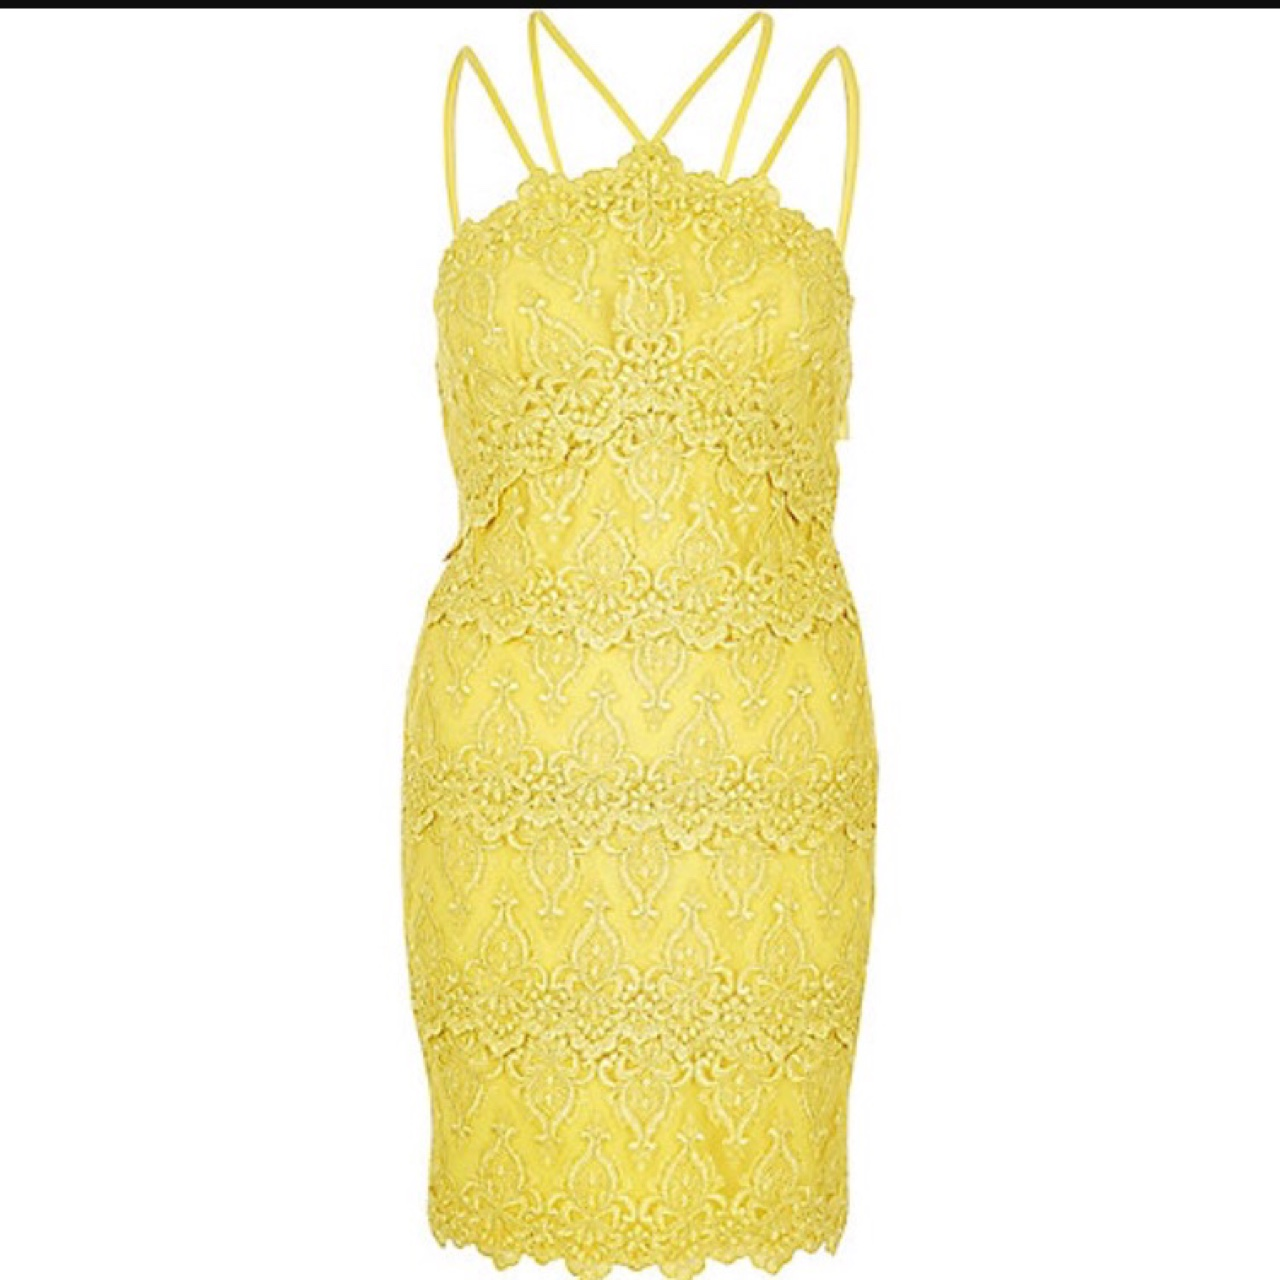 River Island Yellow Lace Dress Size 12 Bodycon Depop